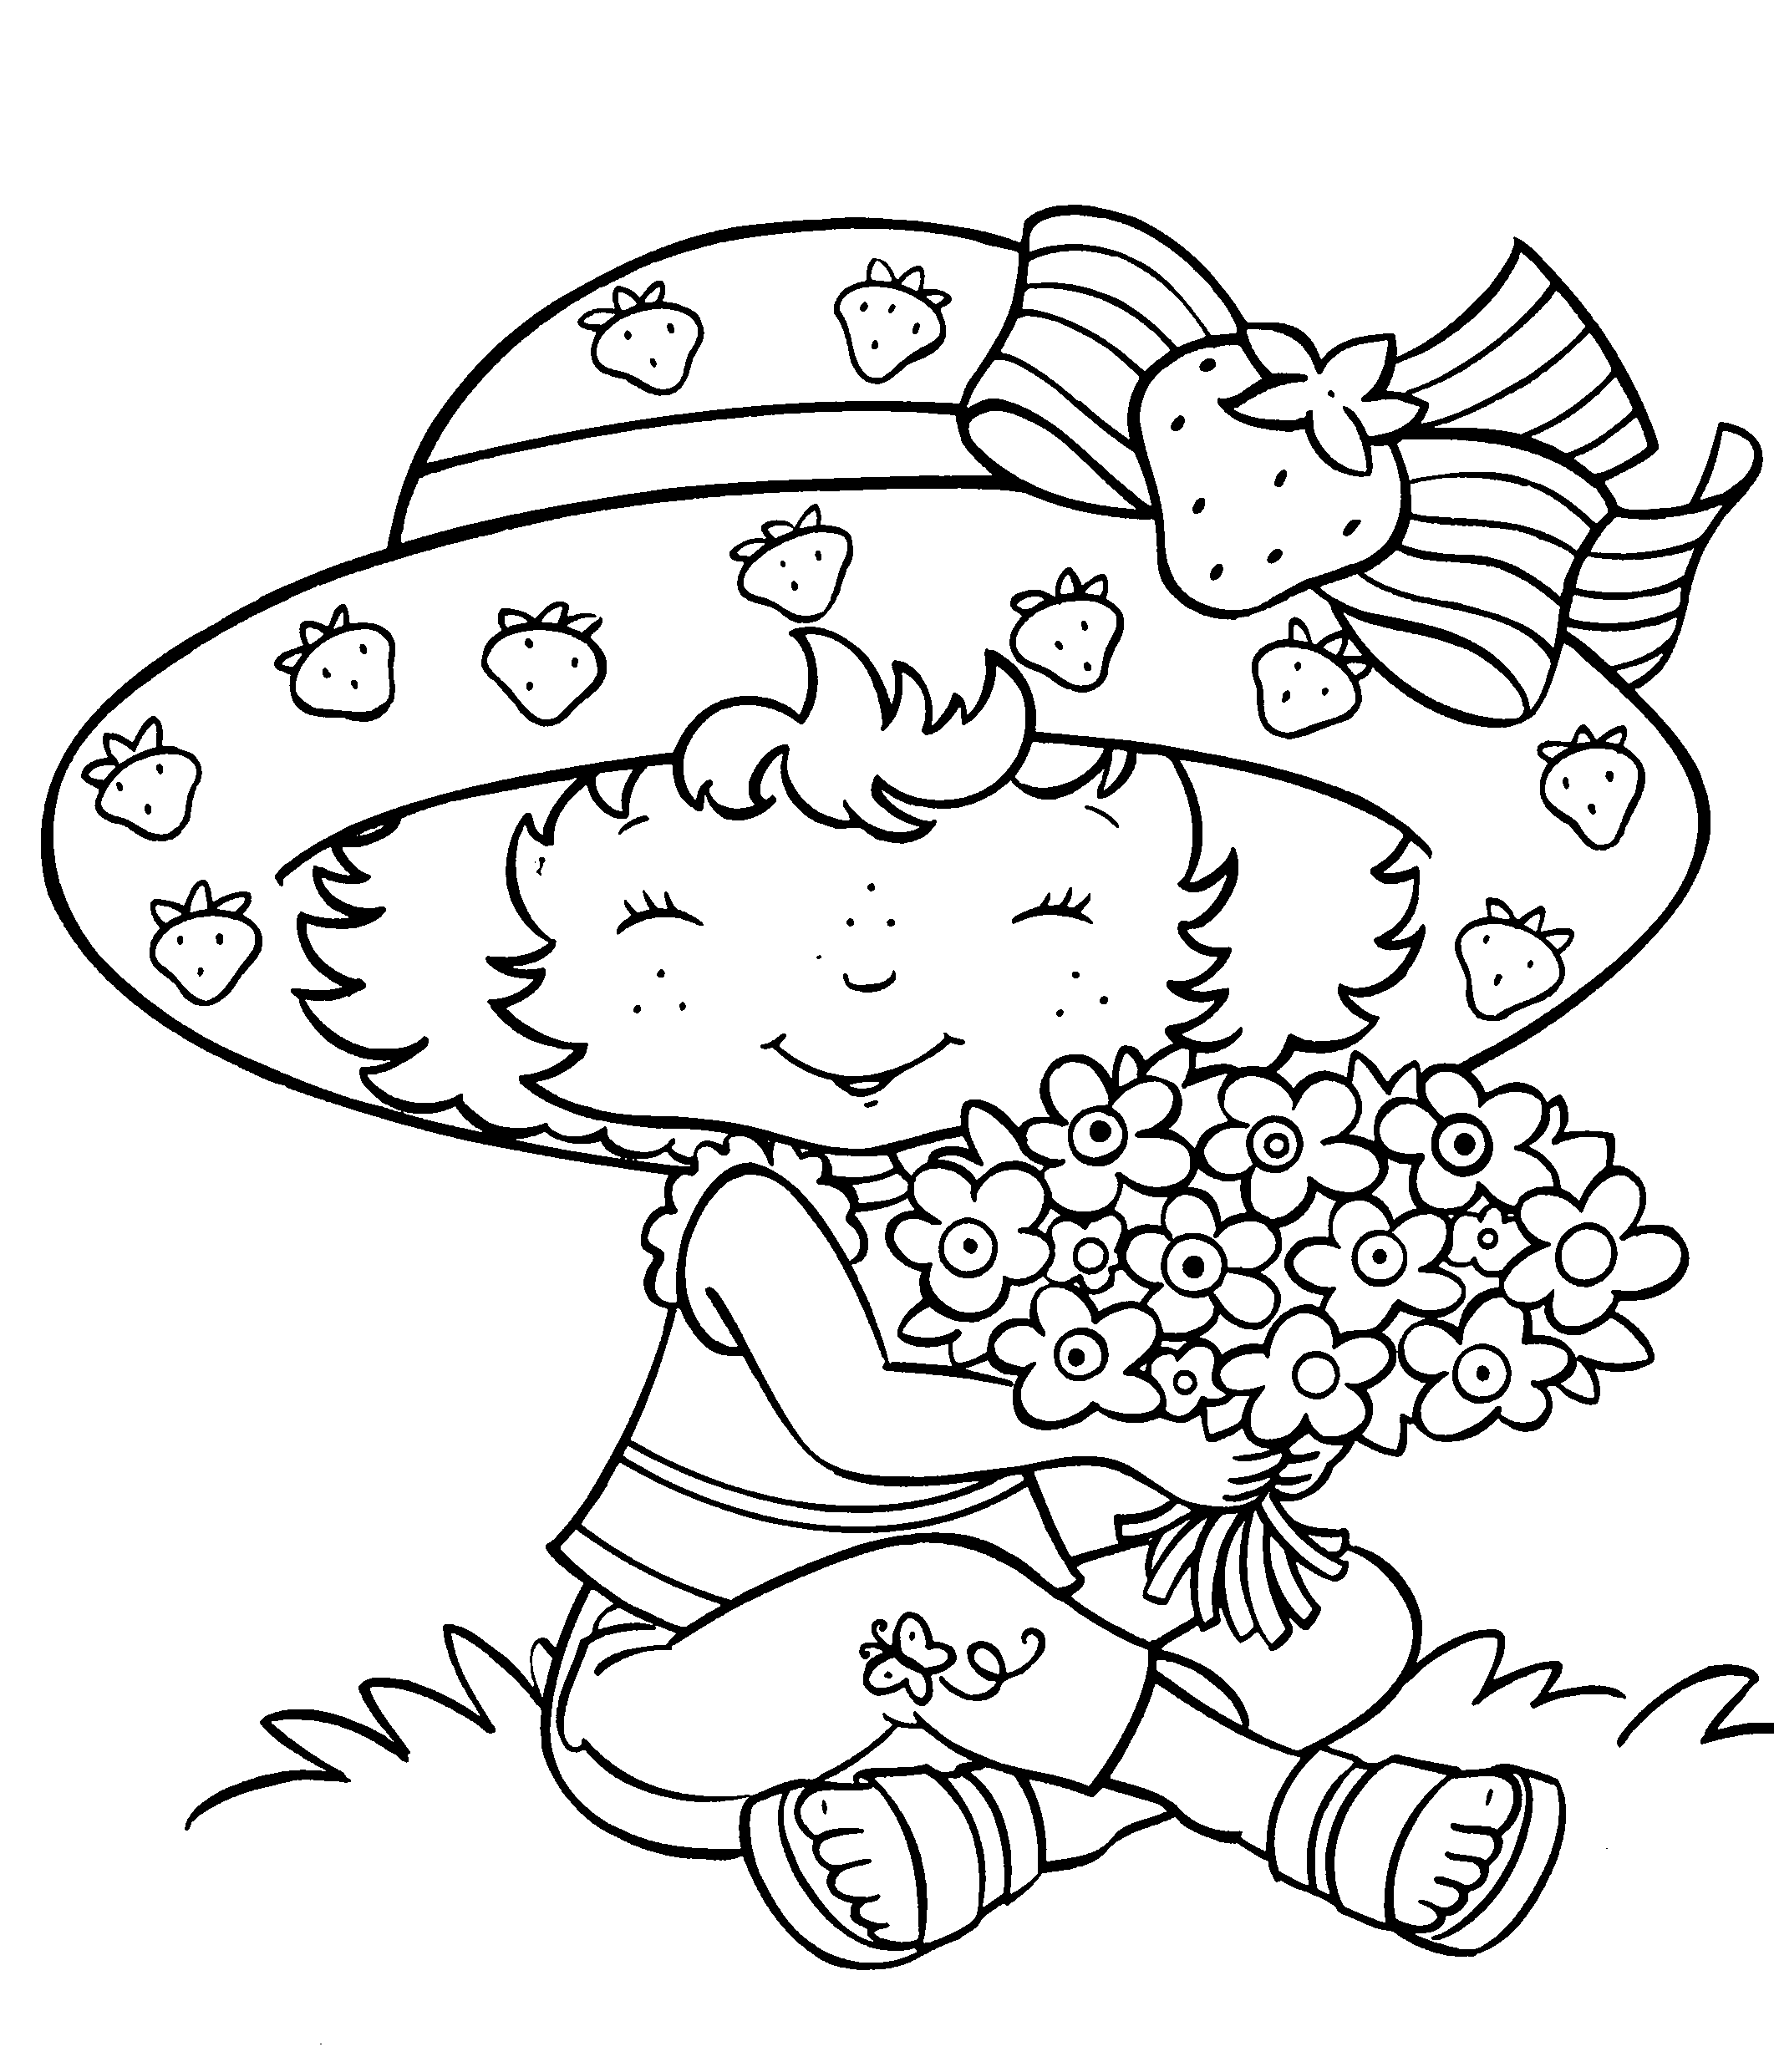 download strawberry shortcake coloring pages - Free Coloring Pictures To Print